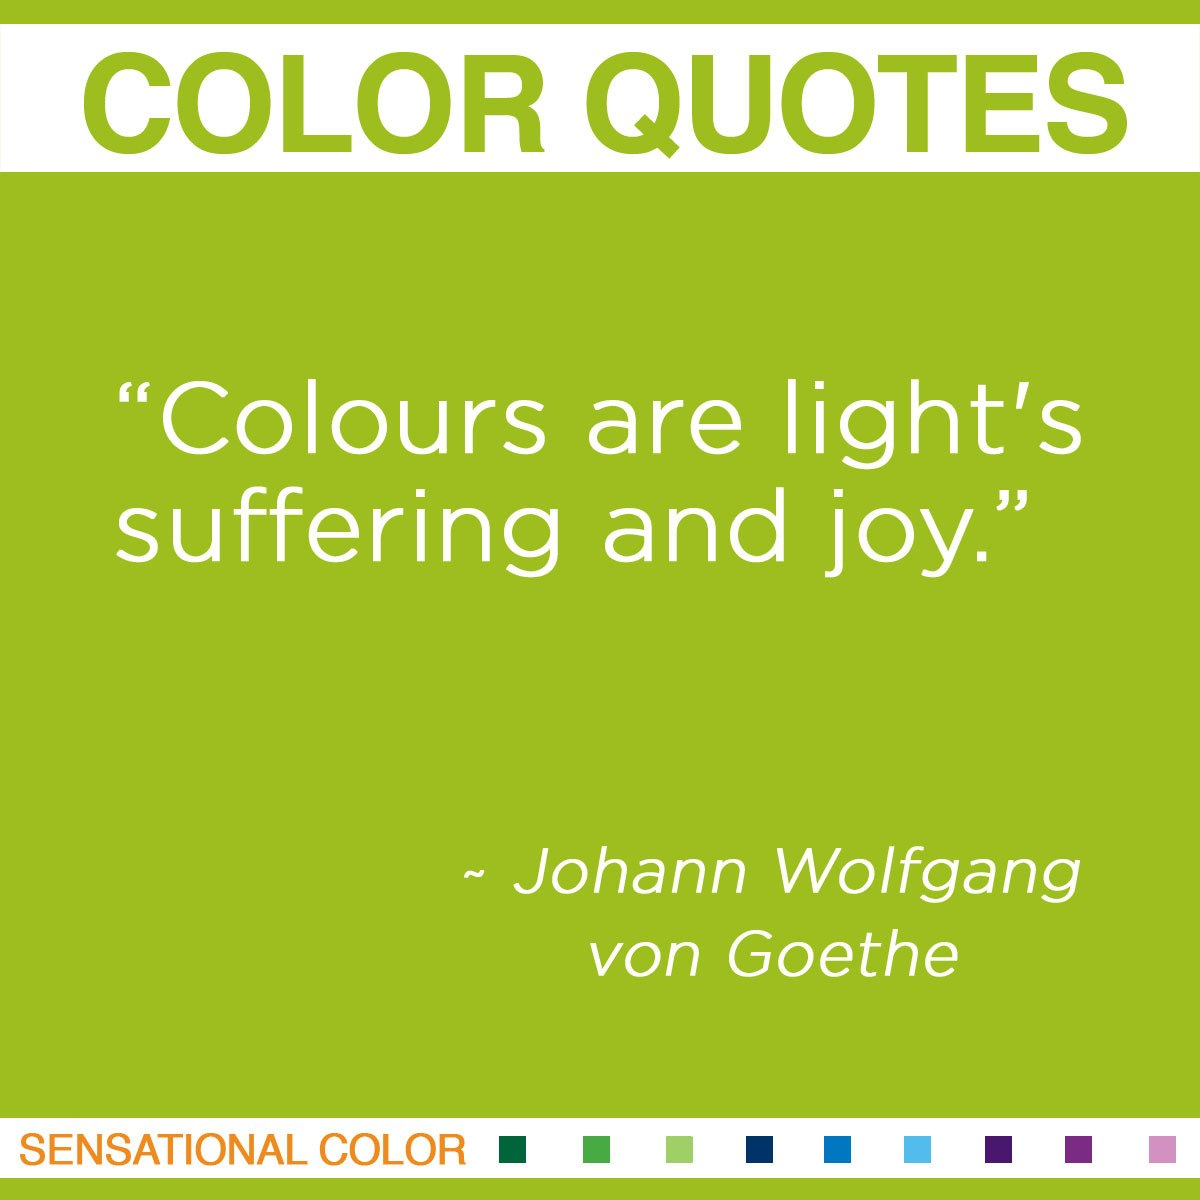 """Colours are light's suffering and joy."" - Johann Wolfgang von Goethe"